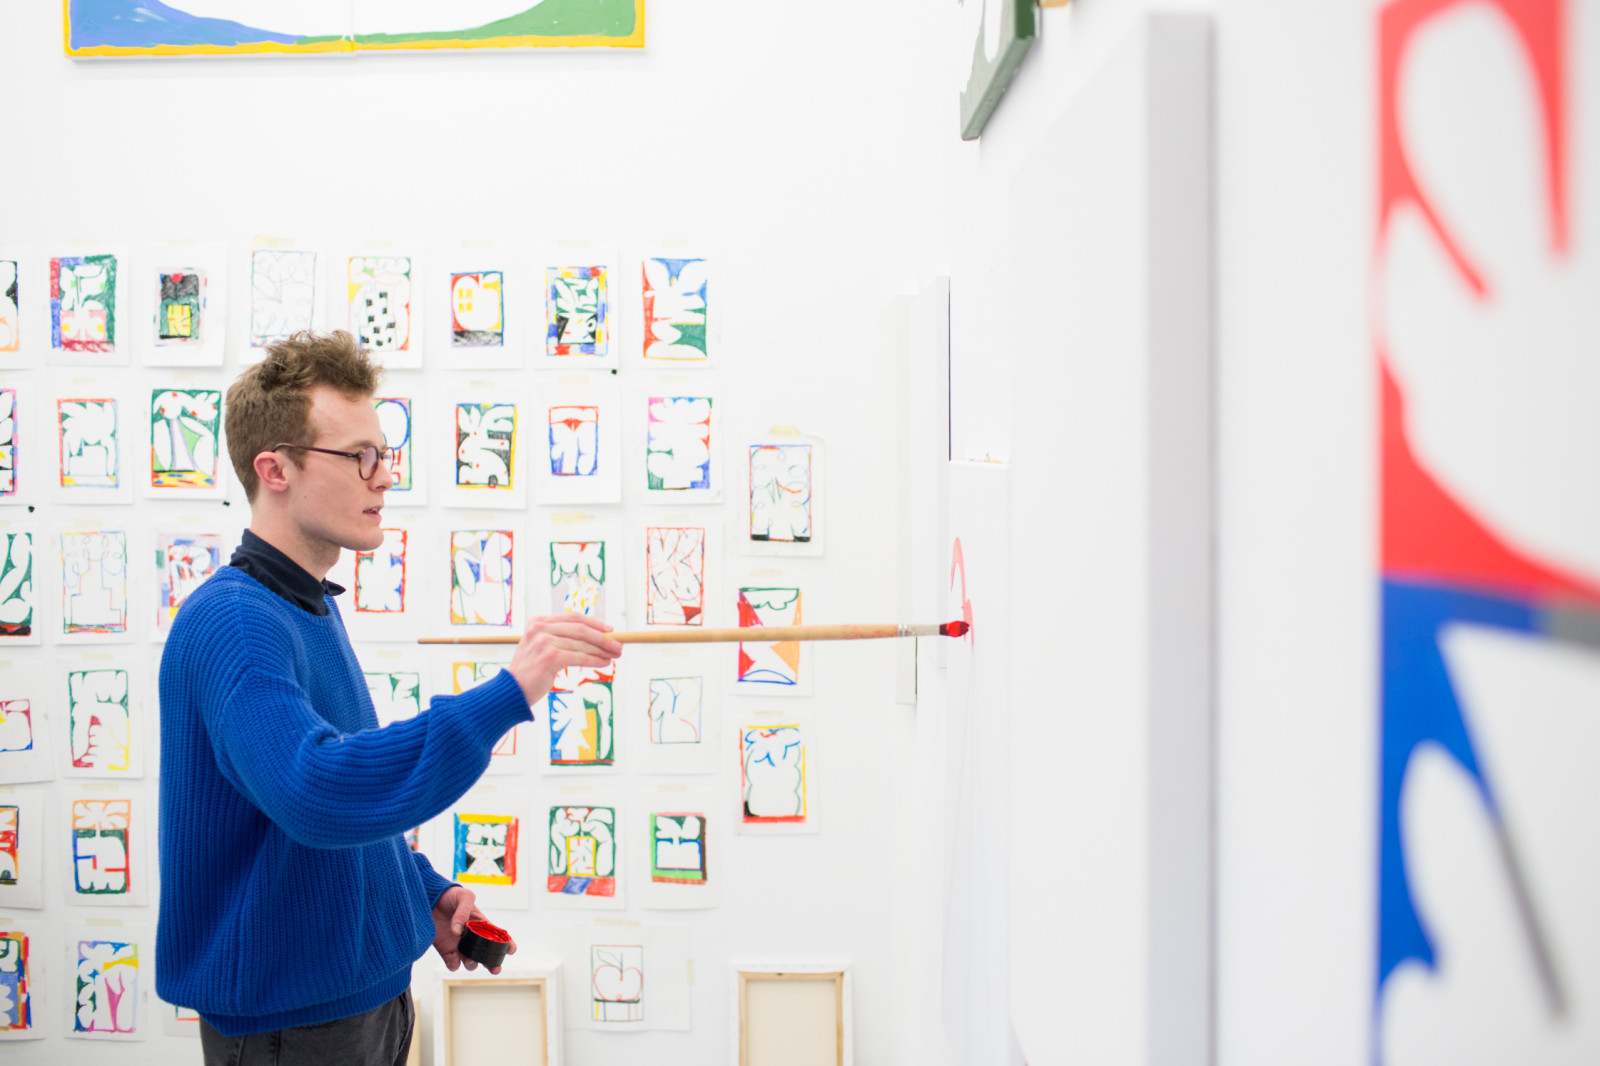 MYKITA FIRST's illustrator Jordy van den Nieuwendijk at his studio in The Hague.